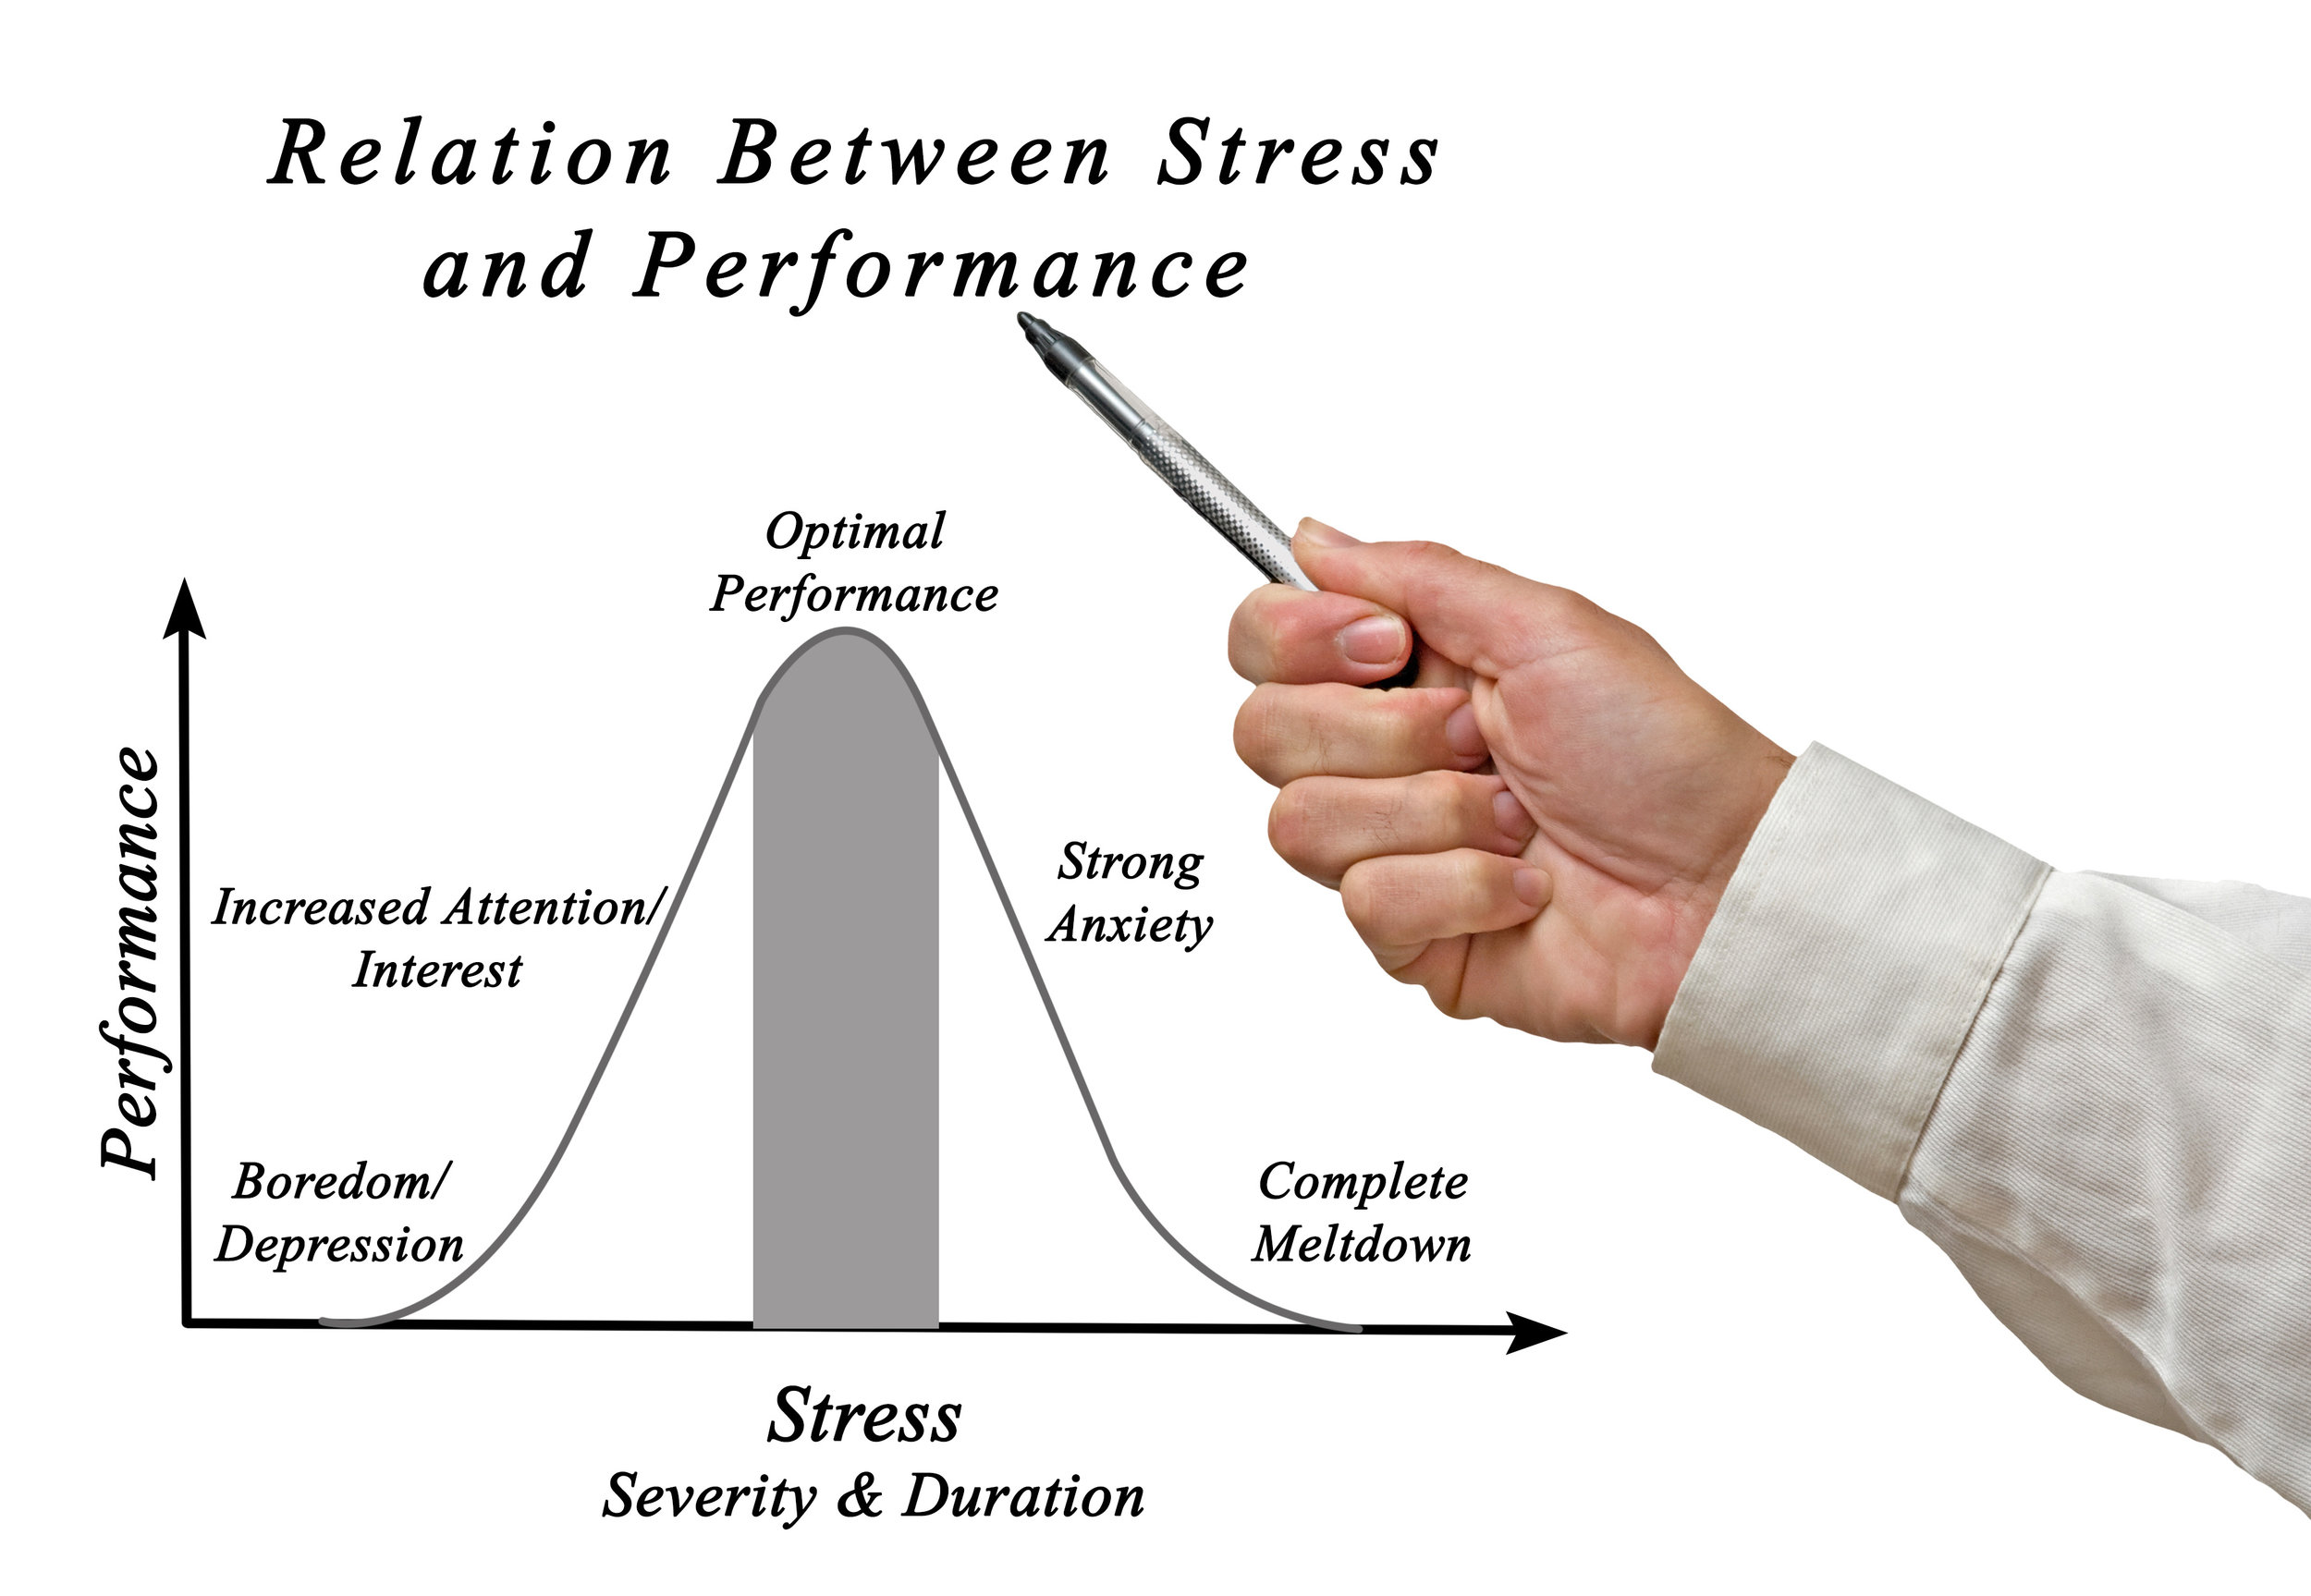 Yerkes–Dodson law linking stress and performance